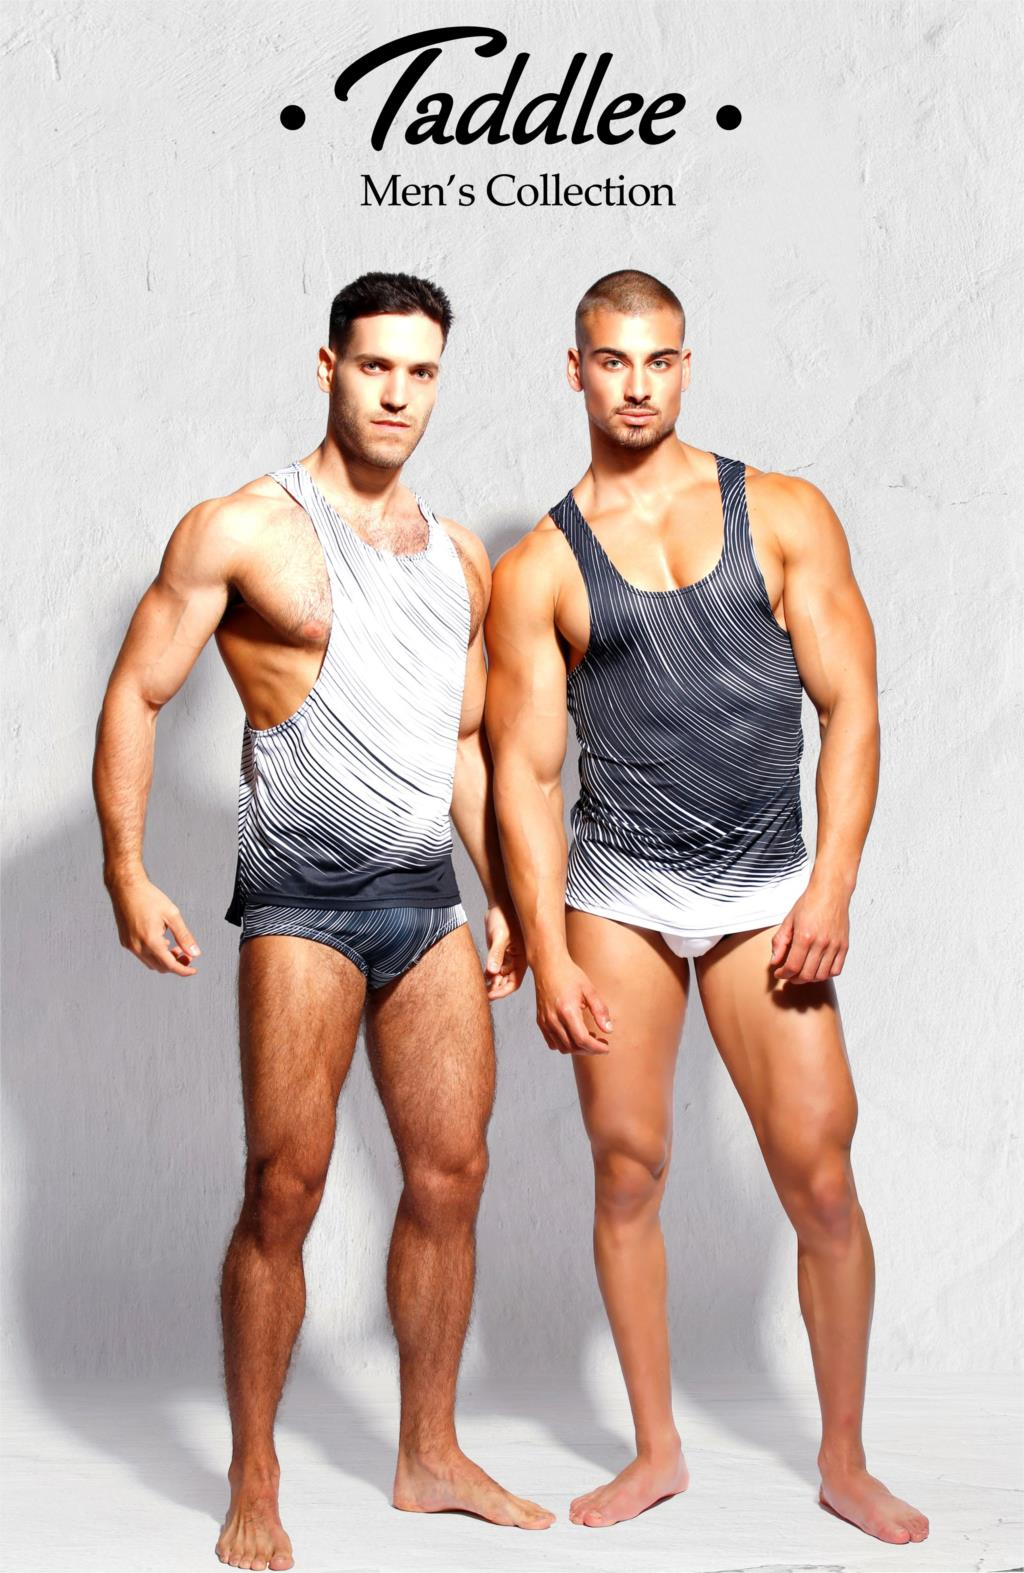 Taddlee-Brand-Men-Tank-Top-Casual-Fashion-Top-Tees-Shirts-Tshirt-Sleeveless-Sinlets-Stringer-Vest-Ga-32773652487